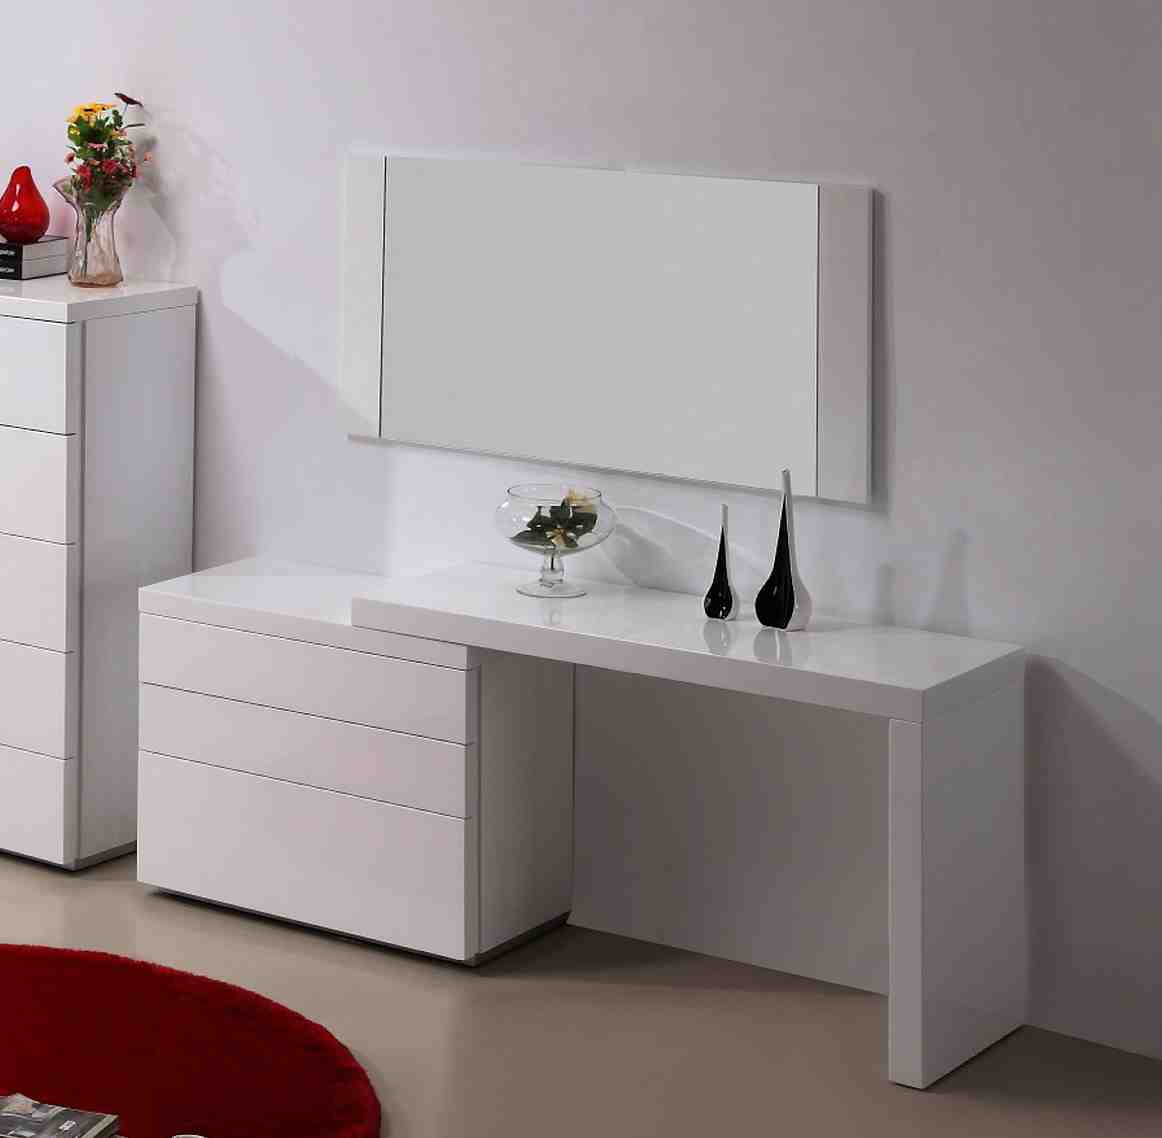 Vanity Dresser Ikea Home Furniture Design